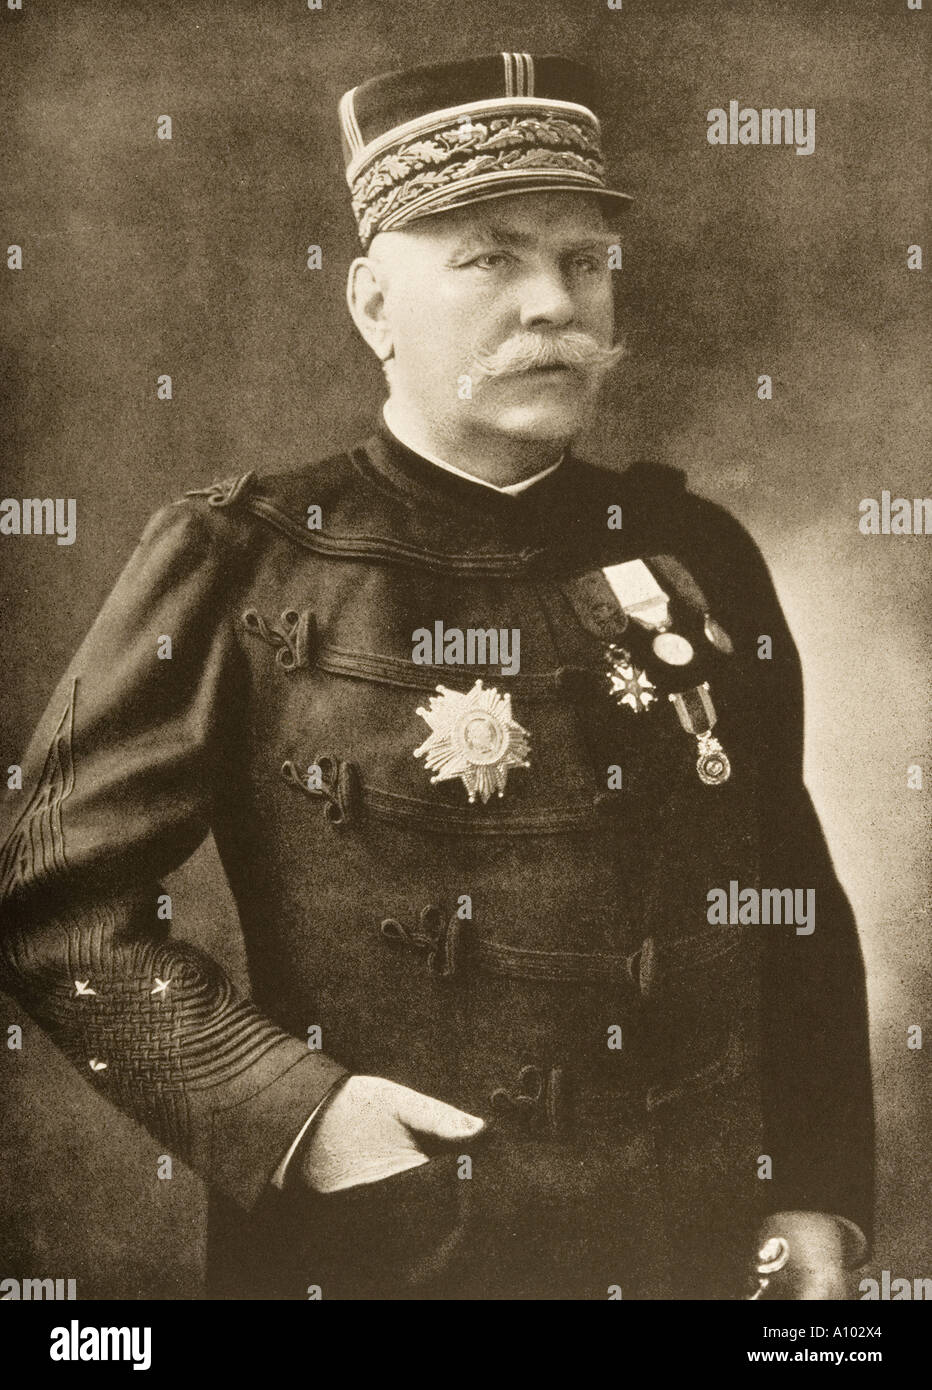 General Joseph Jacques Cesaire Joffre 1852 1931 Chief of Staff French army First World War from photograph by Henri Manuel - Stock Image